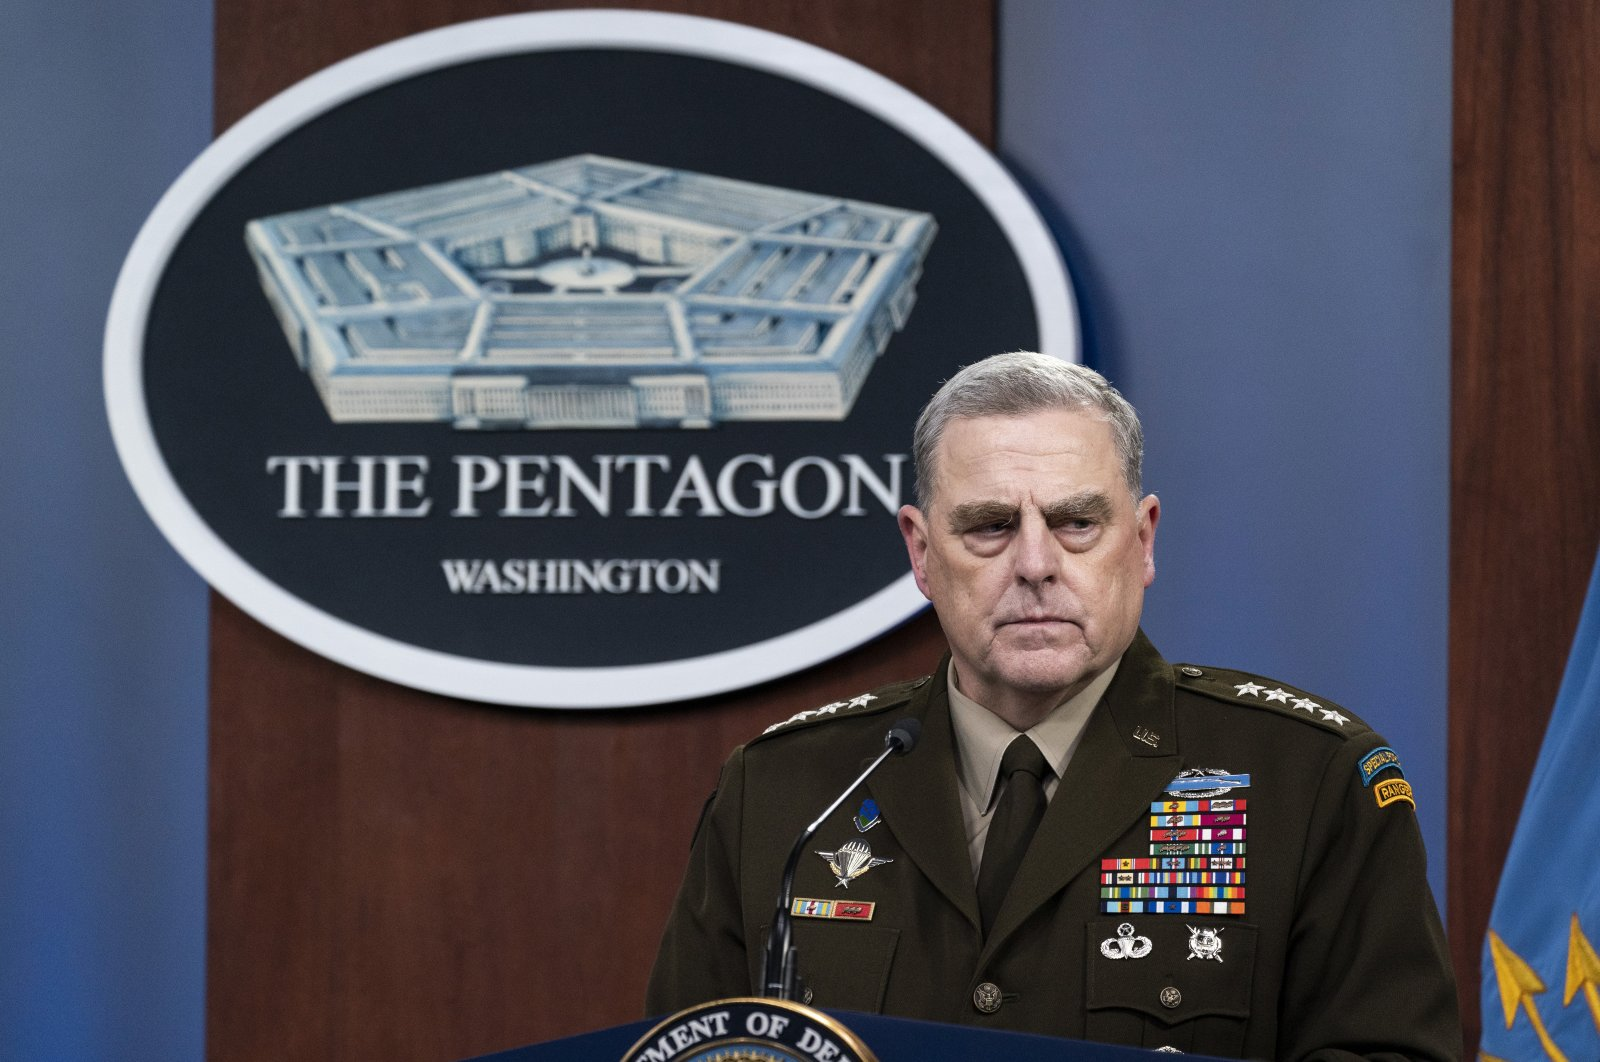 Chairperson of the Joint Chiefs of Staff Gen. Mark Milley pauses while speaking during a media briefing at the Pentagon in Washington, D.C., U.S., Aug. 18, 2021. (AP Photo)